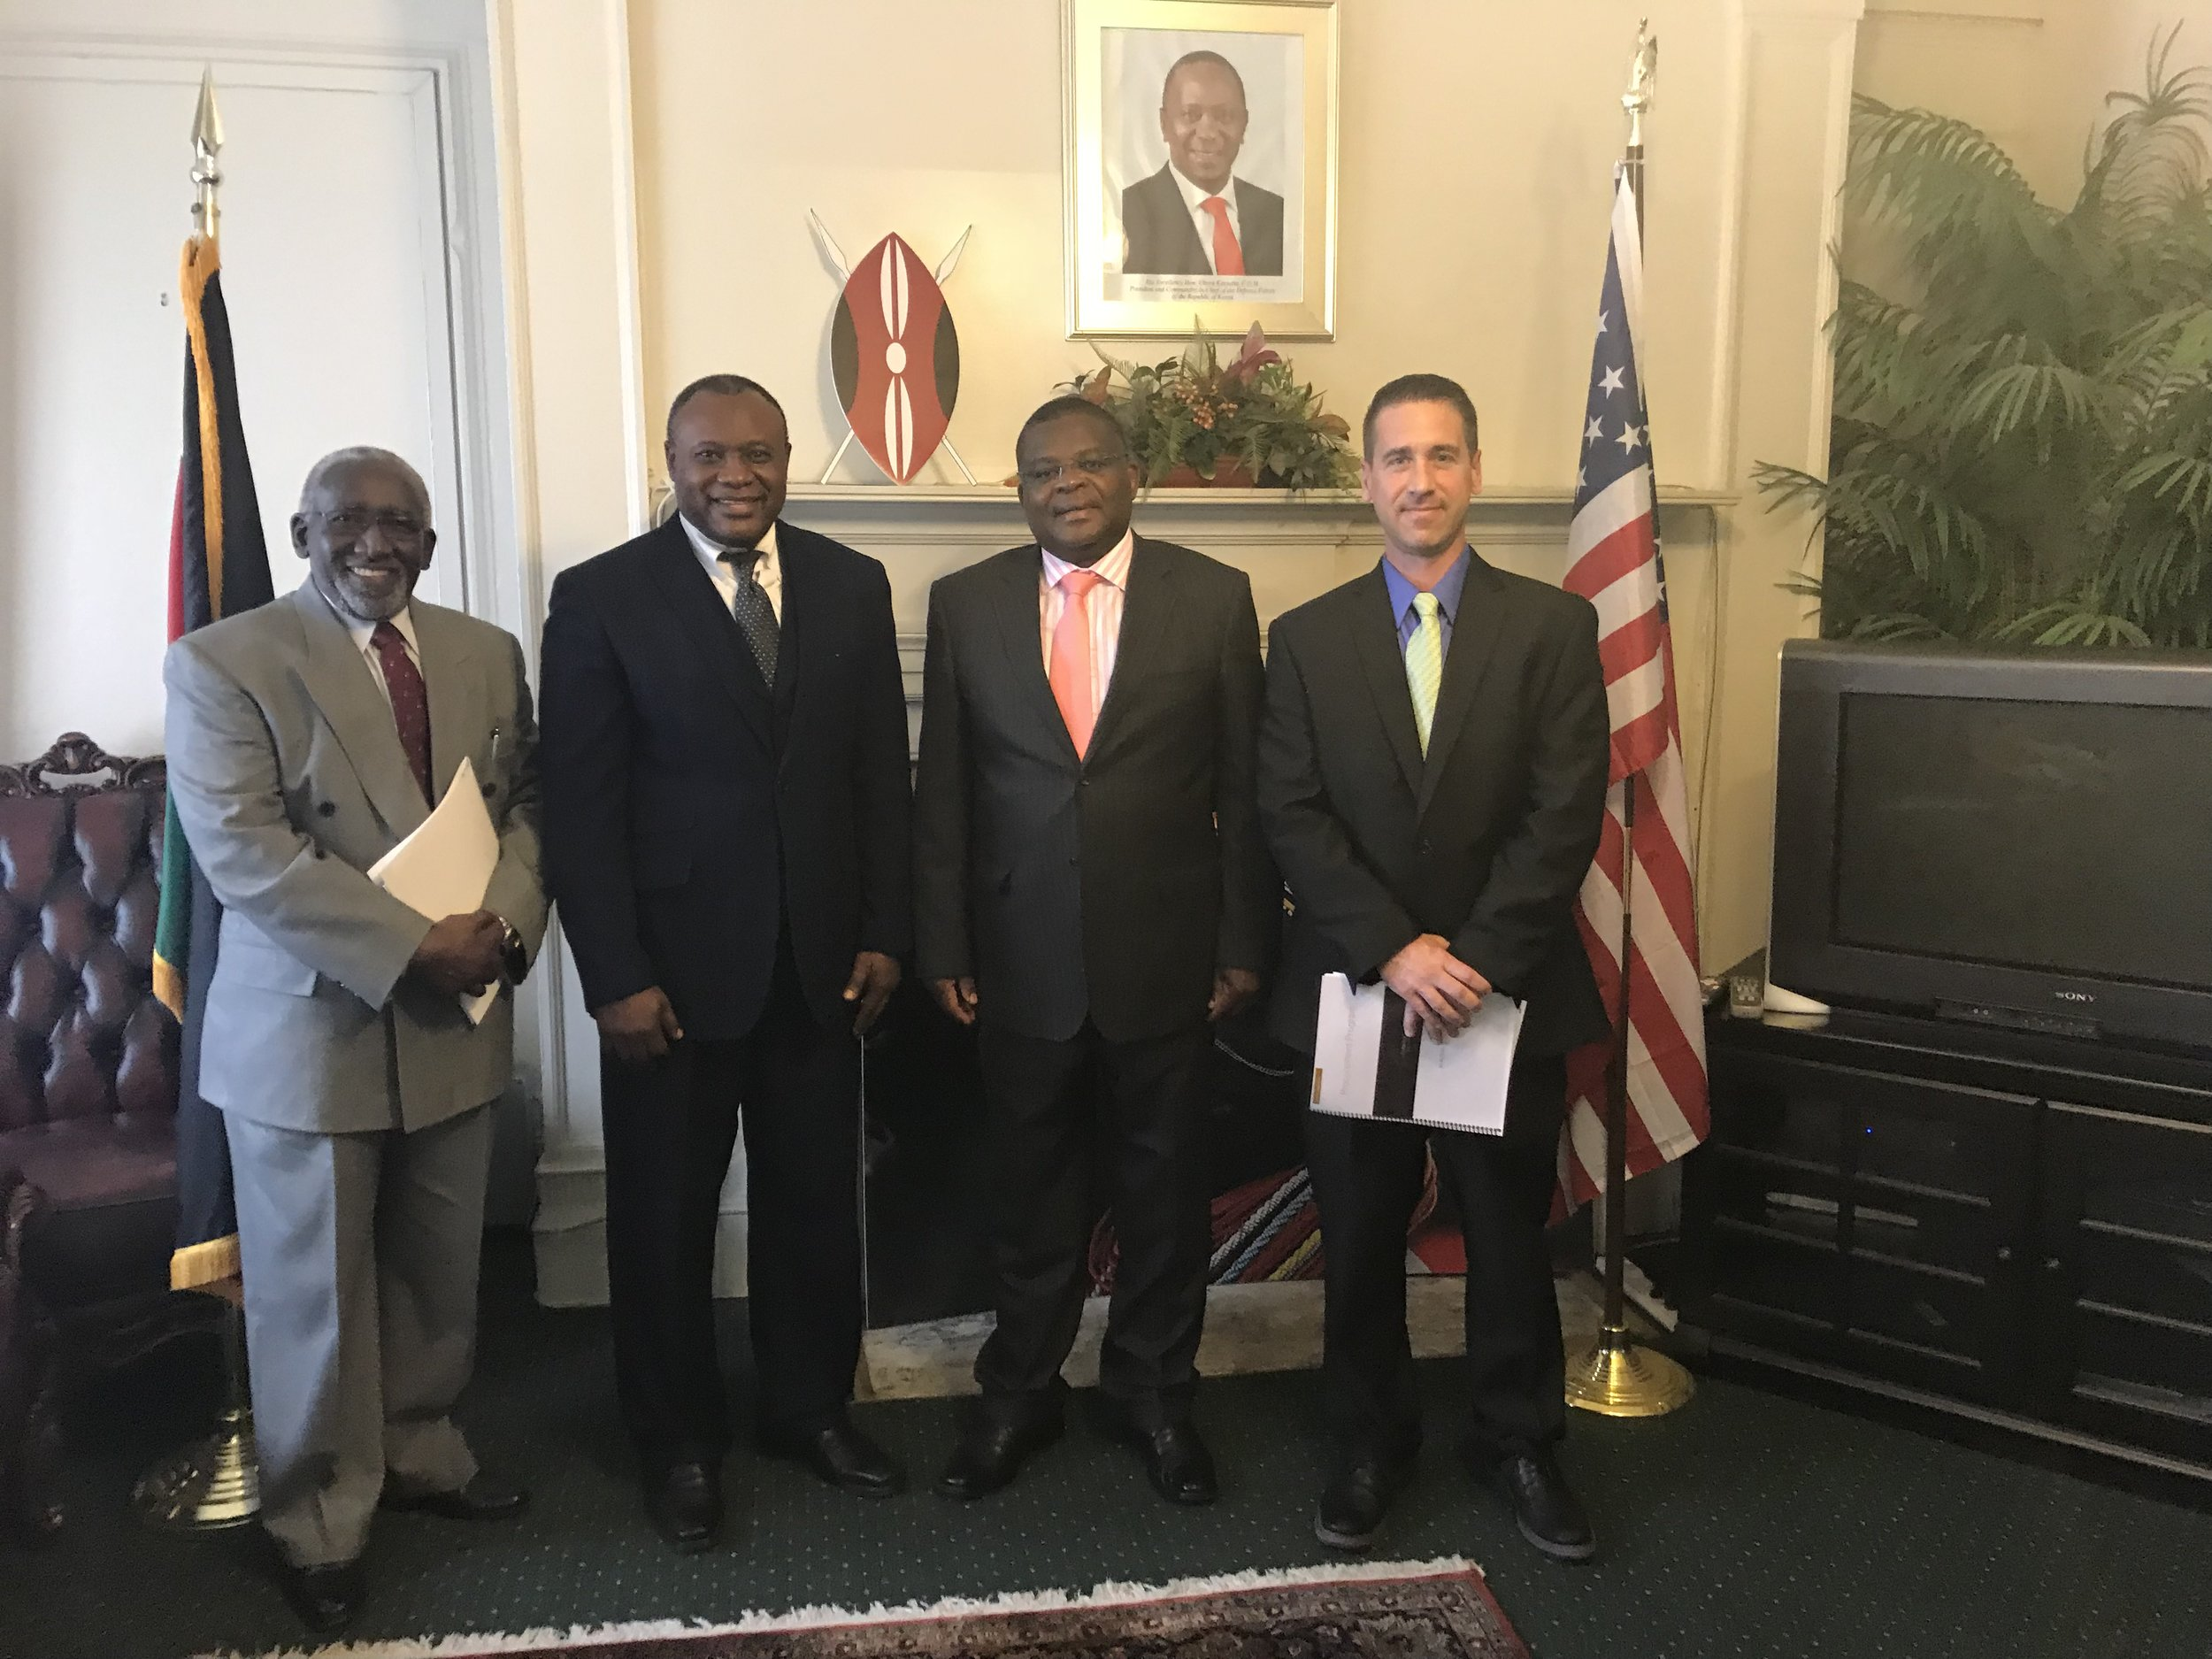 Dr. Gatabki, Thomas, His Excellency Robinson Githe, Ambassador to Kenya, and Brian